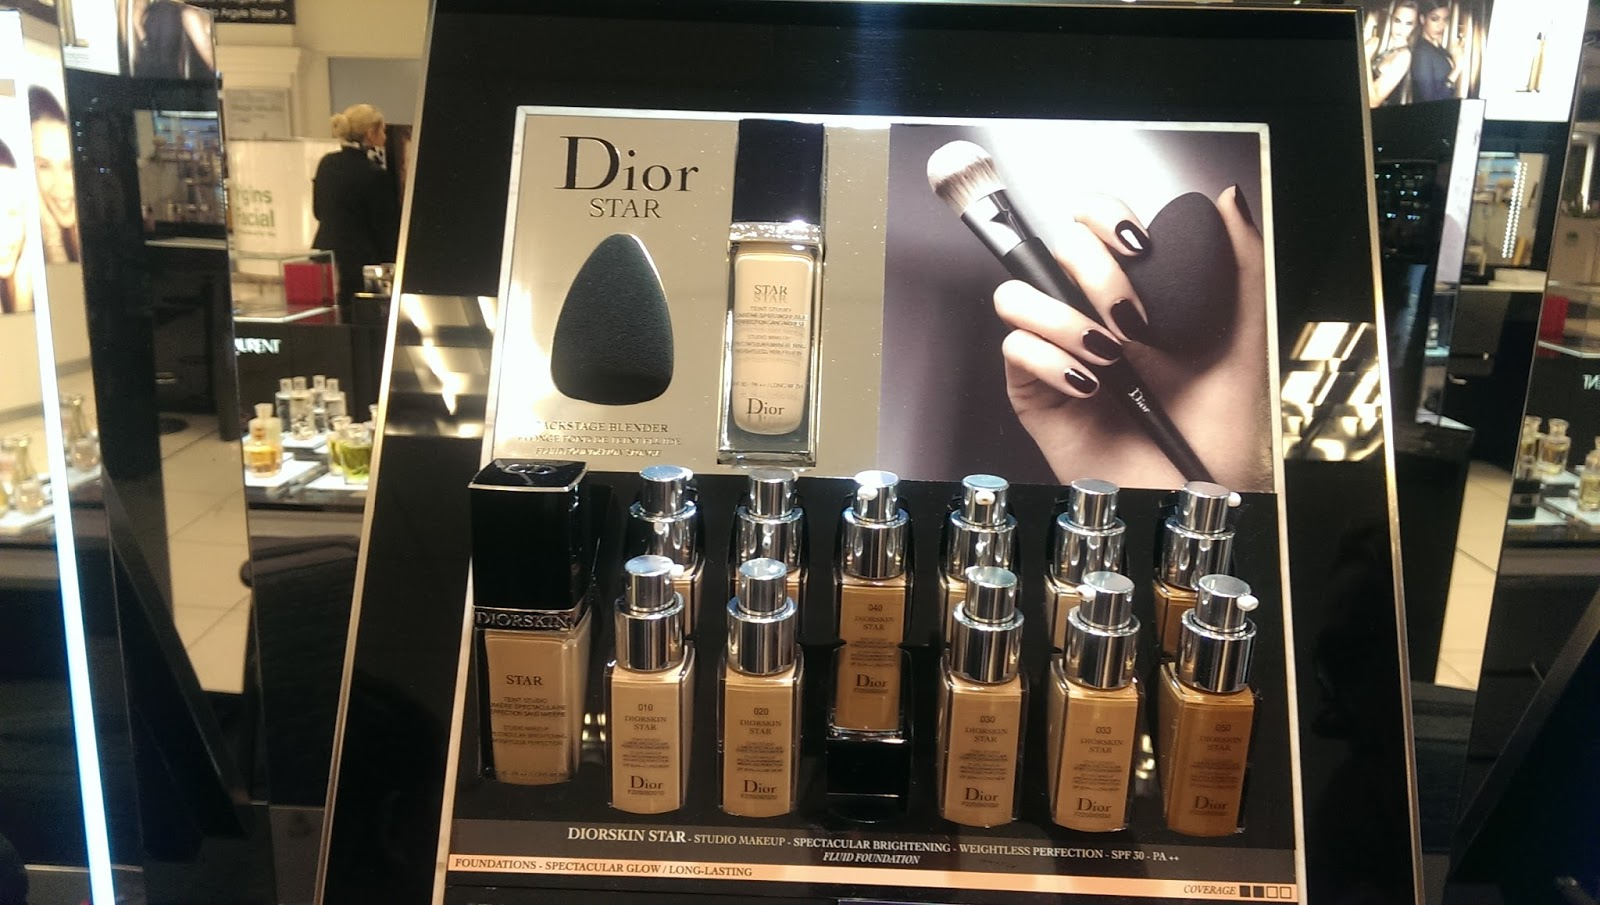 Dior Star Counter Display